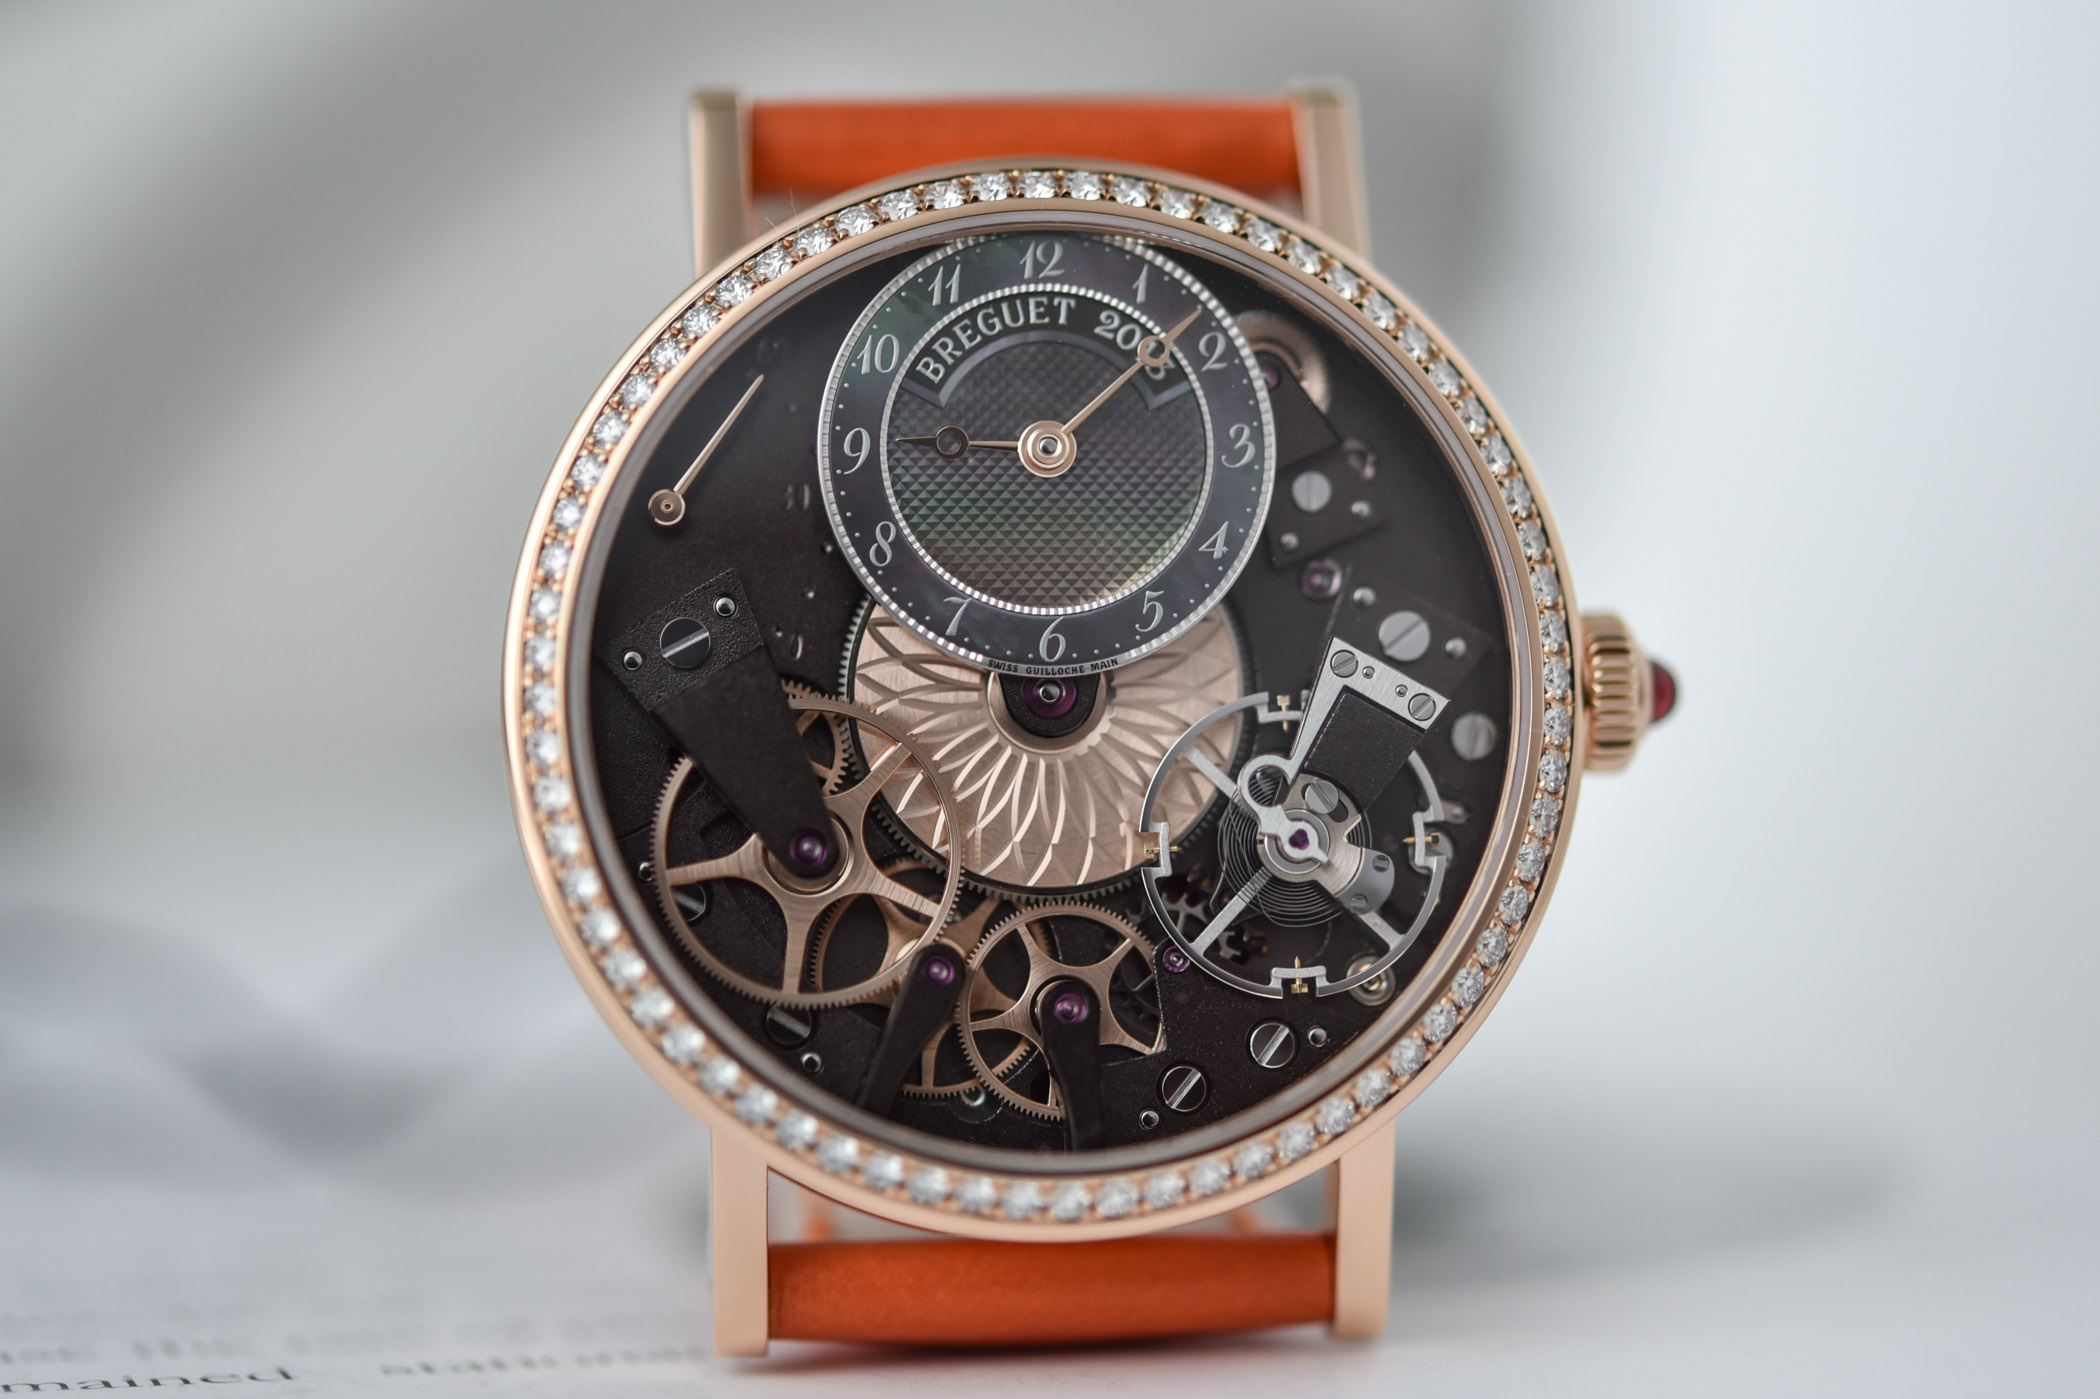 Breguet Tradition 7038 Boutique Edition women